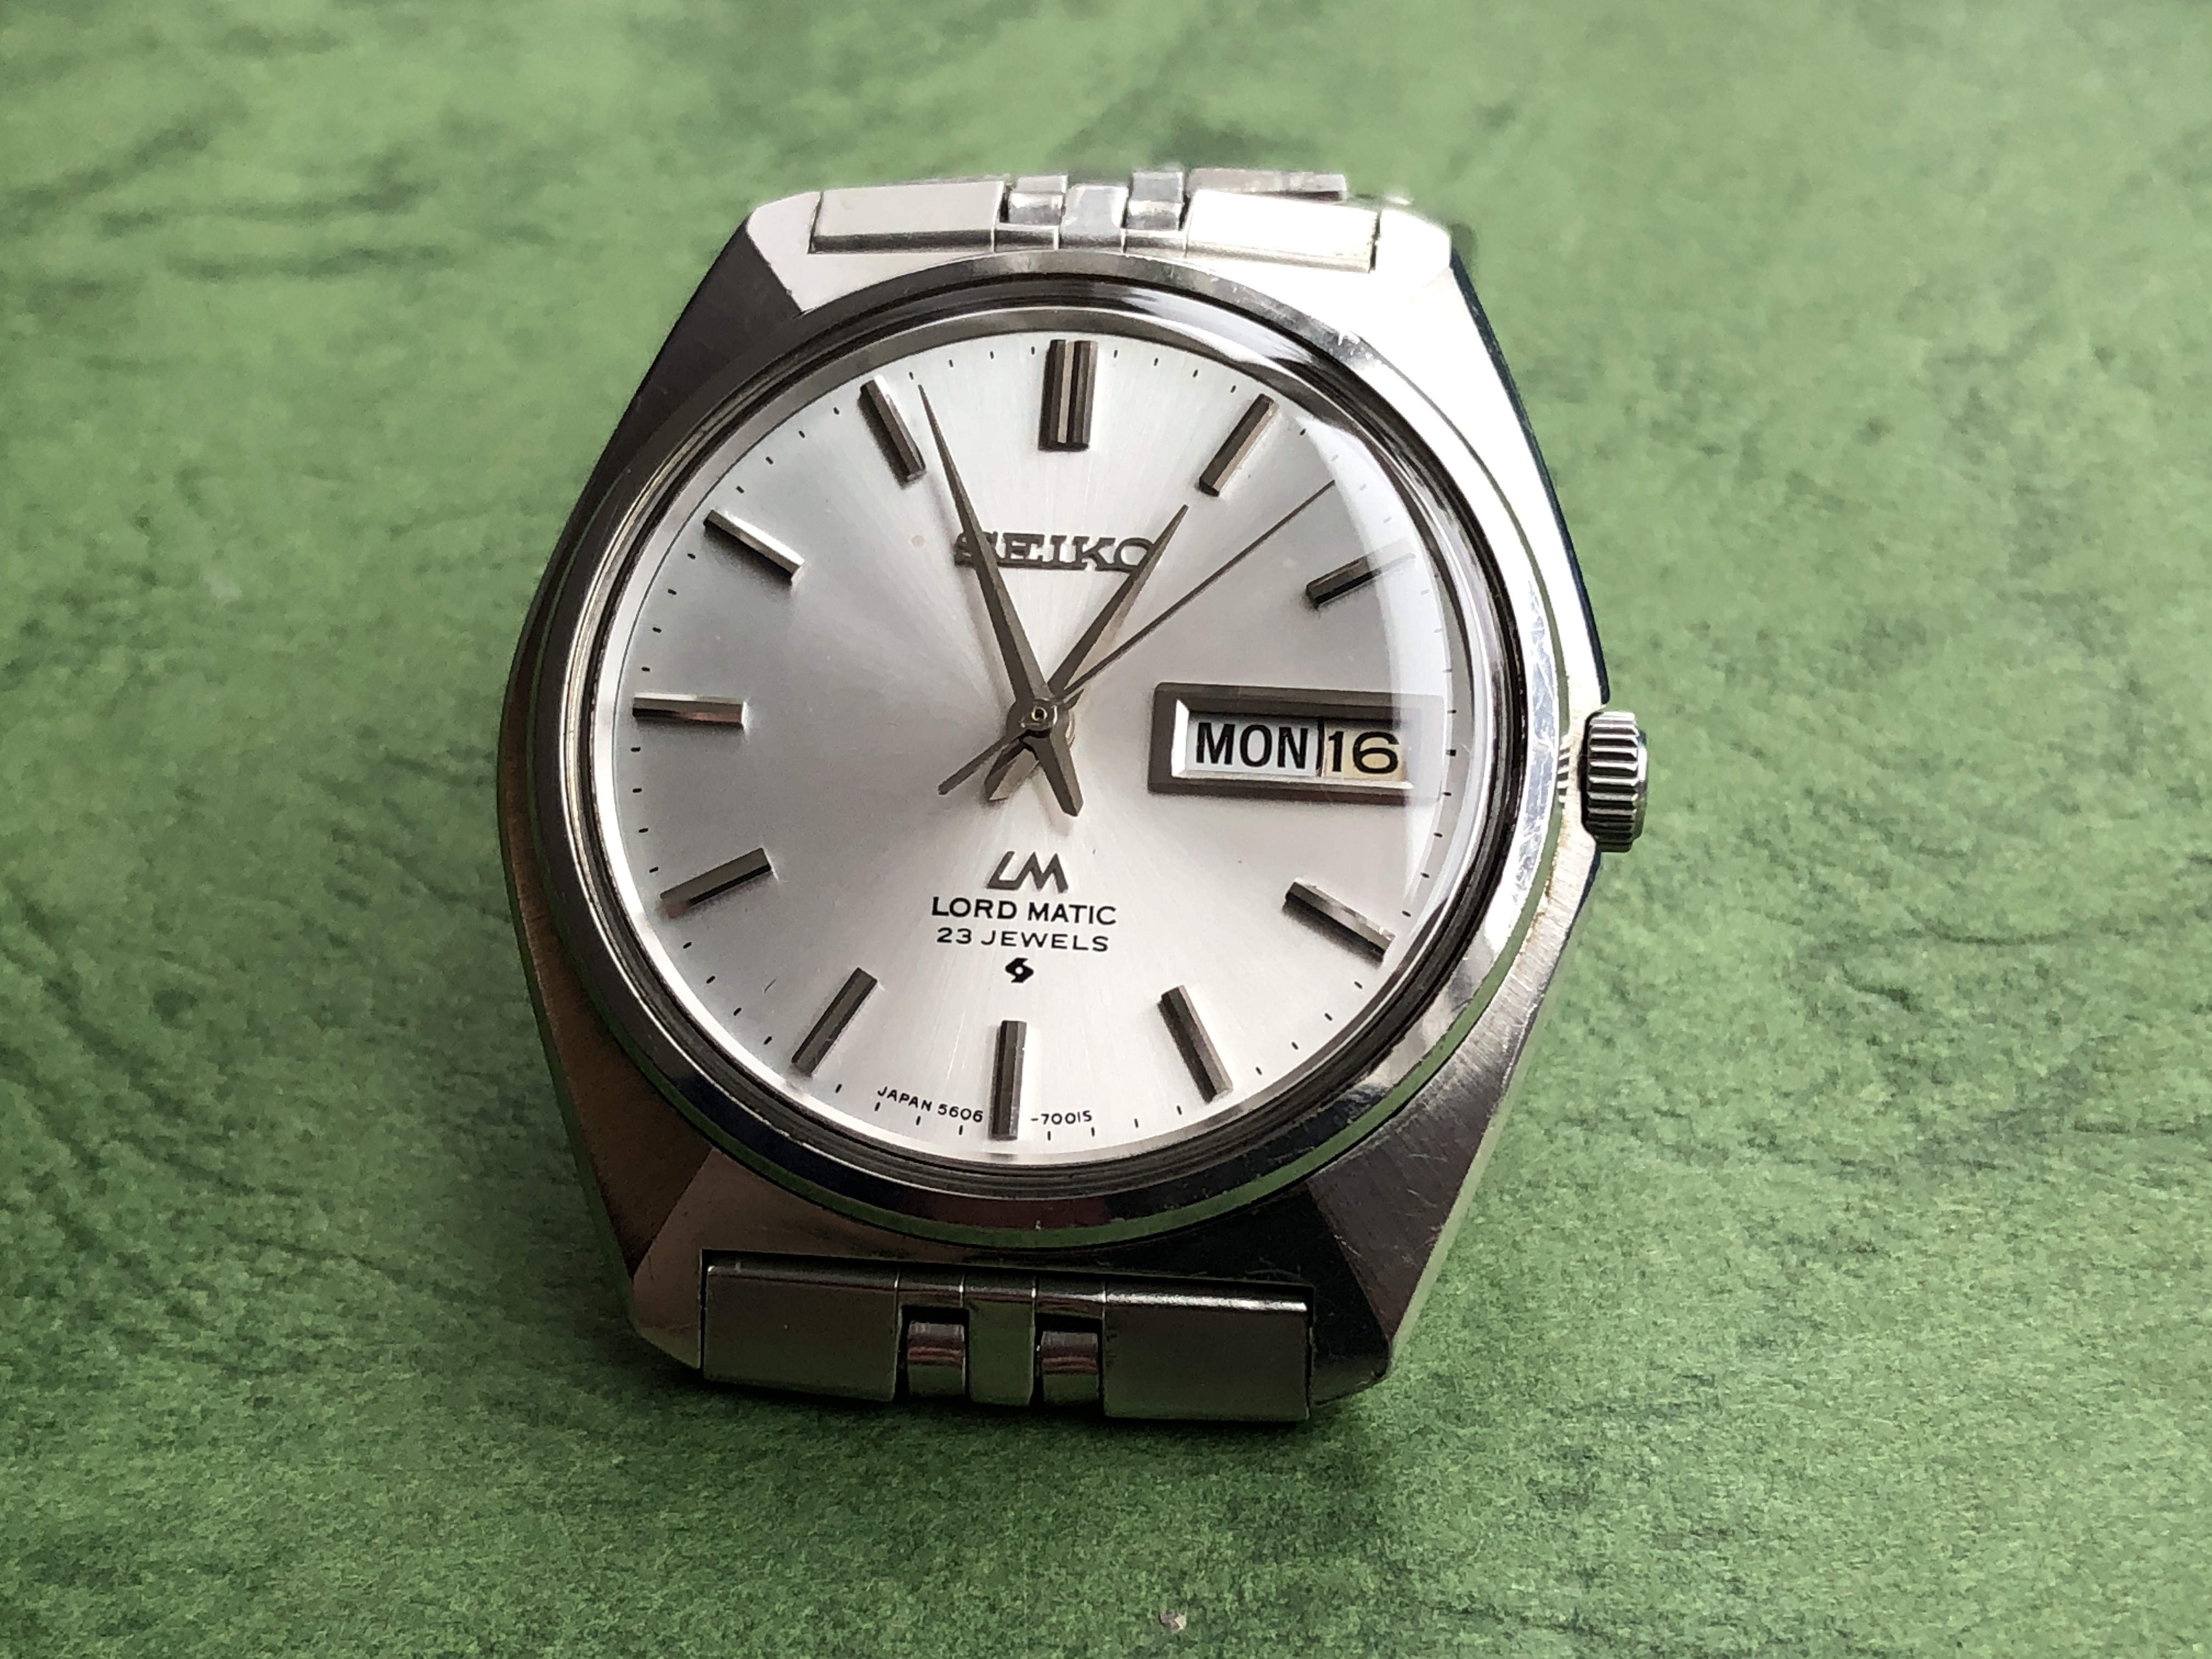 Seiko Lord-Matic 5606-7000 (For sale)